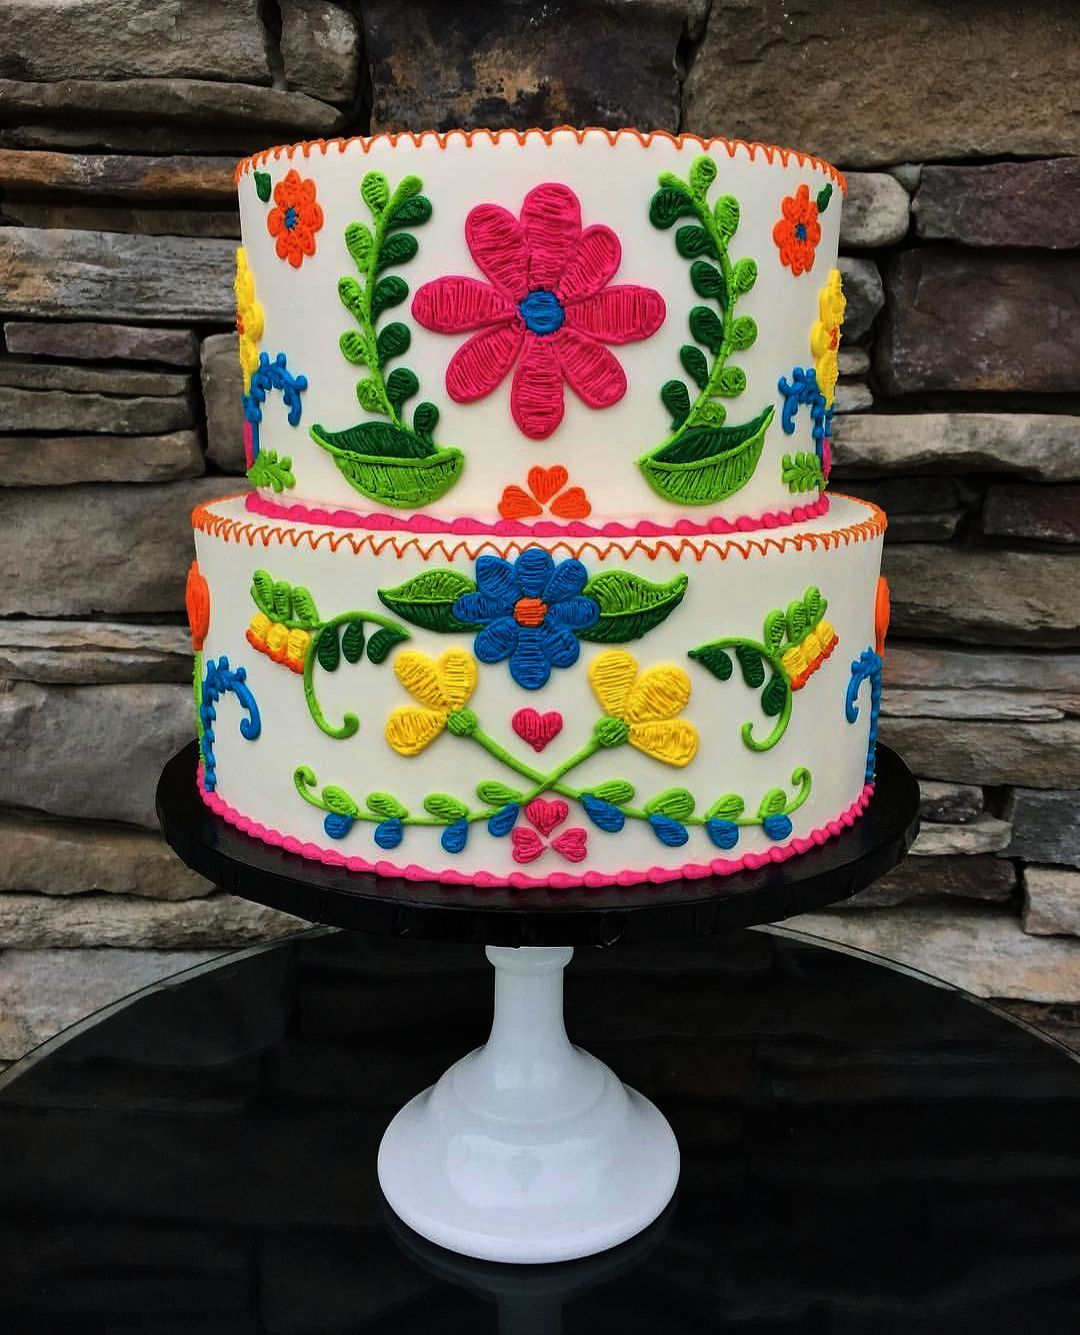 Embroidery Groups Near Me about Embroidery Near Me Open